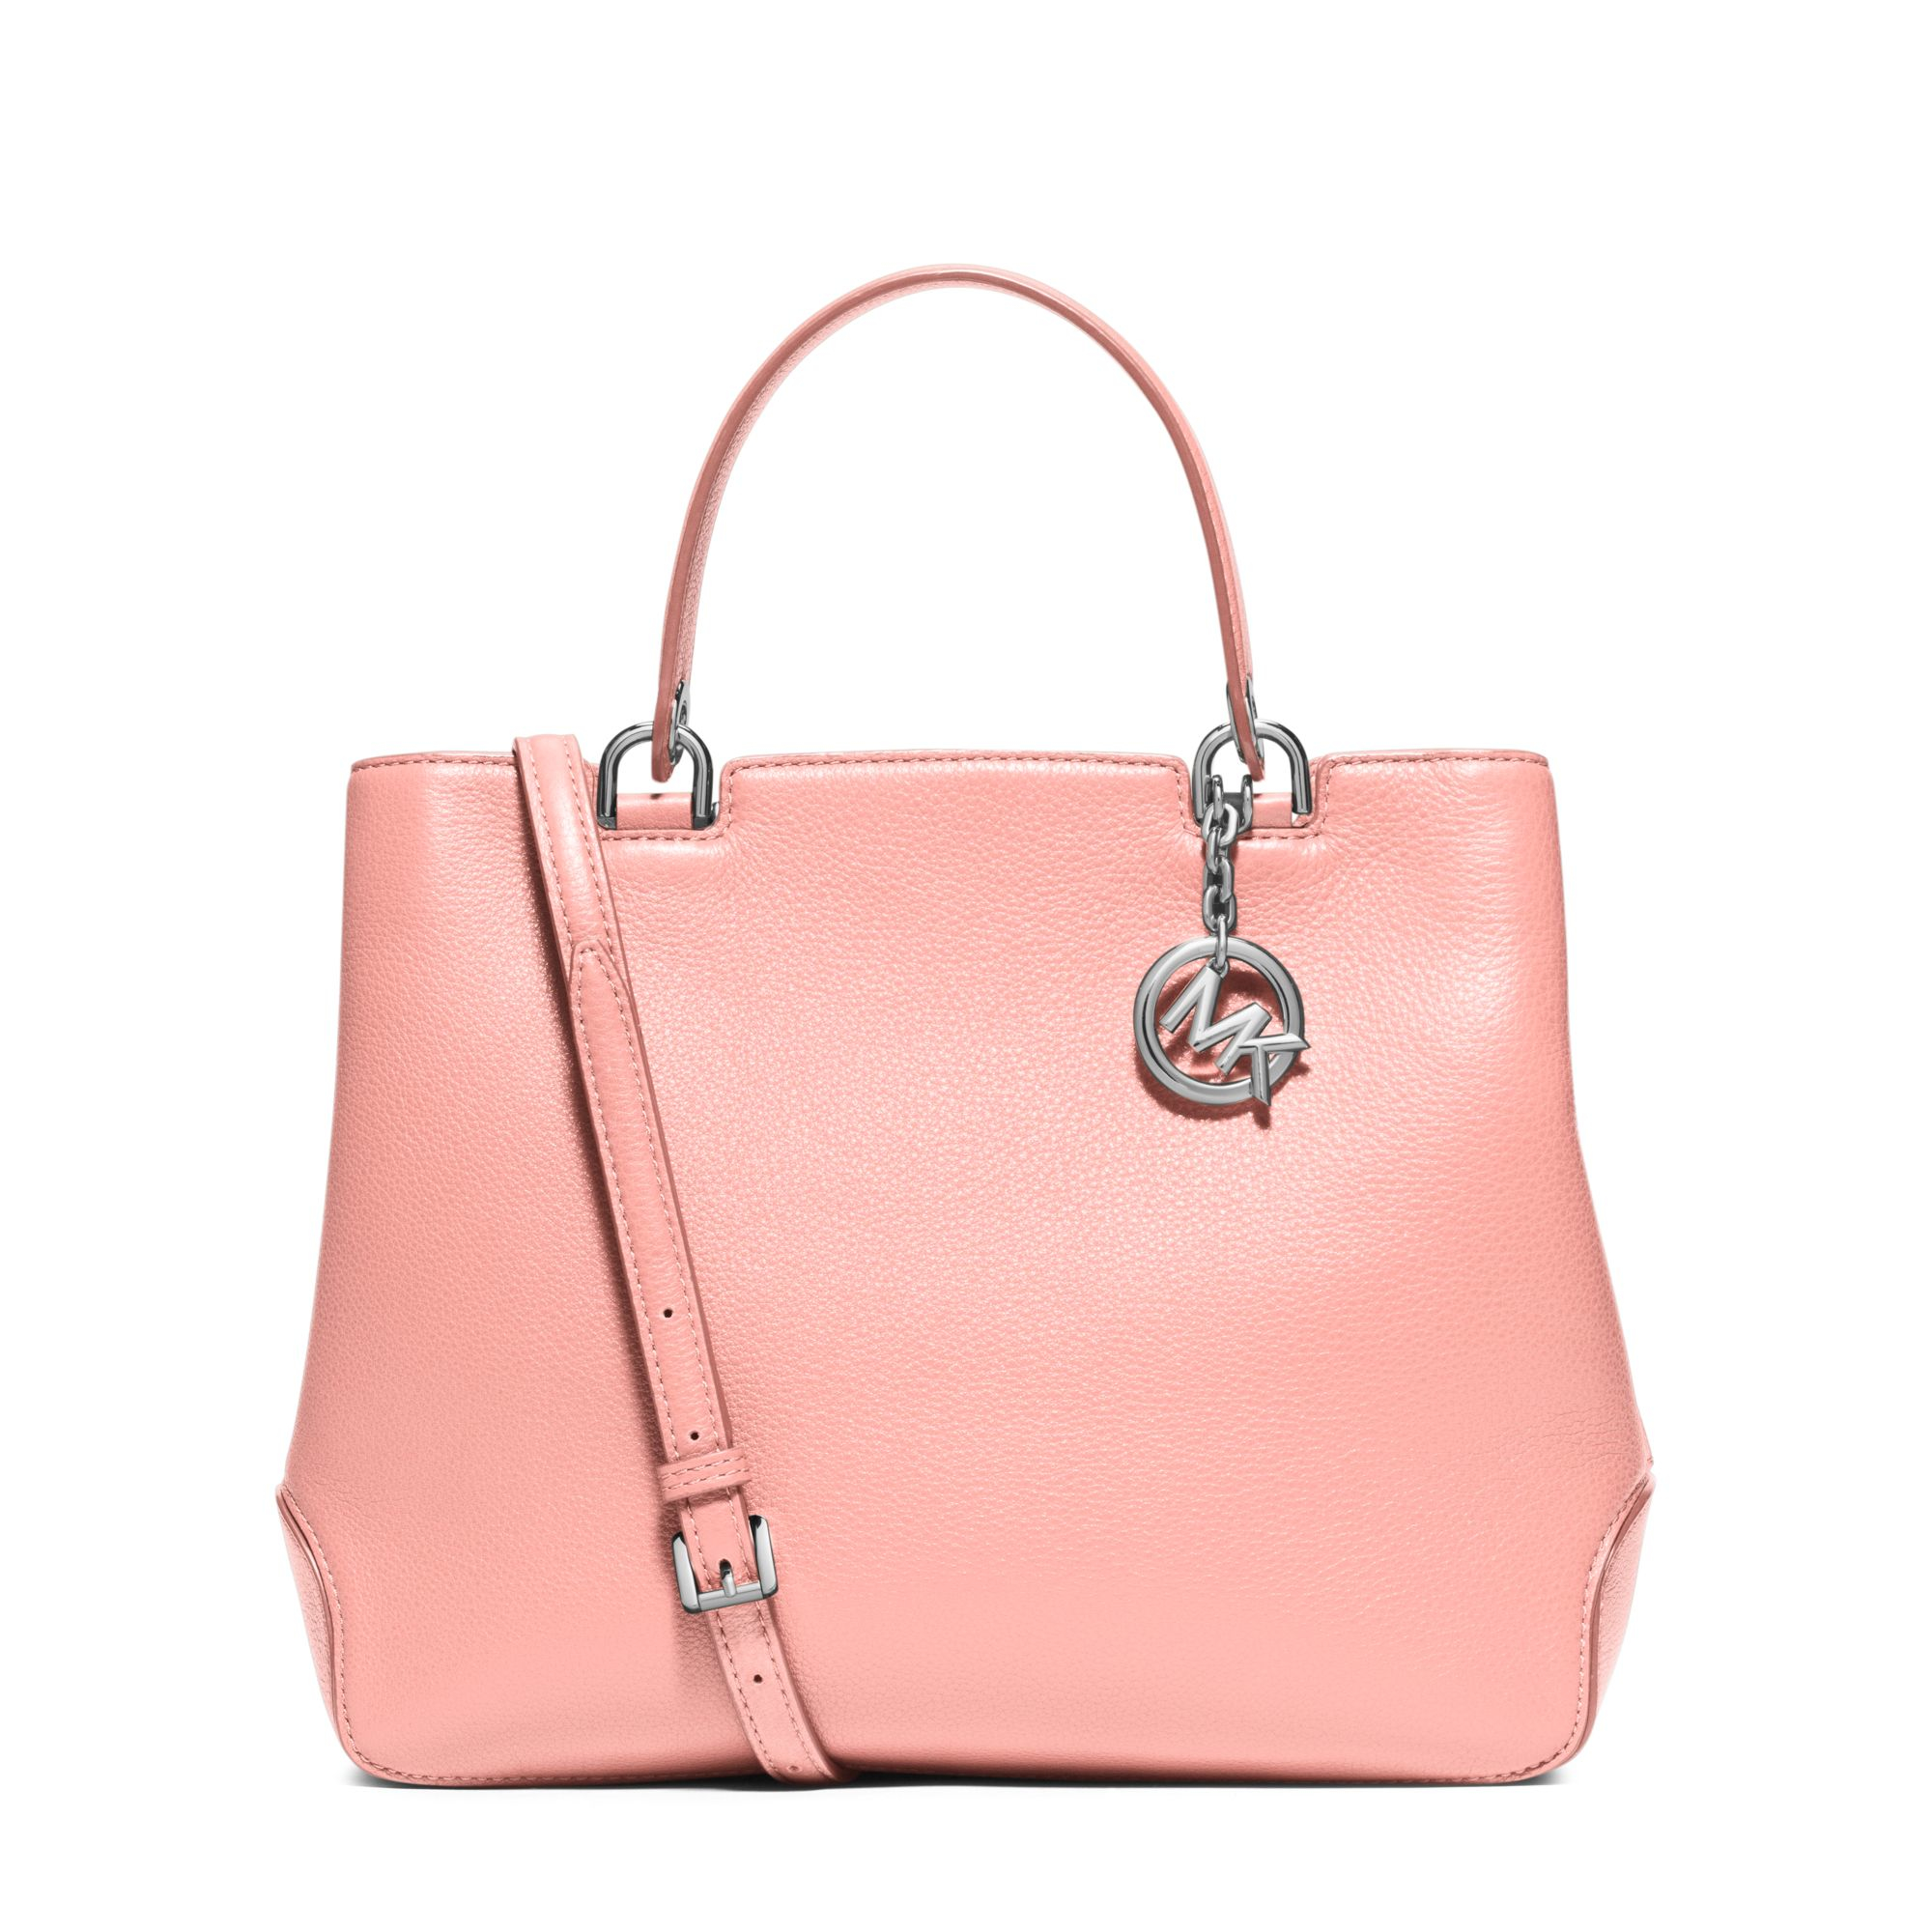 3dd8e8a3c6e0c Lyst - Michael Kors Anabelle Large Leather Tote in Pink